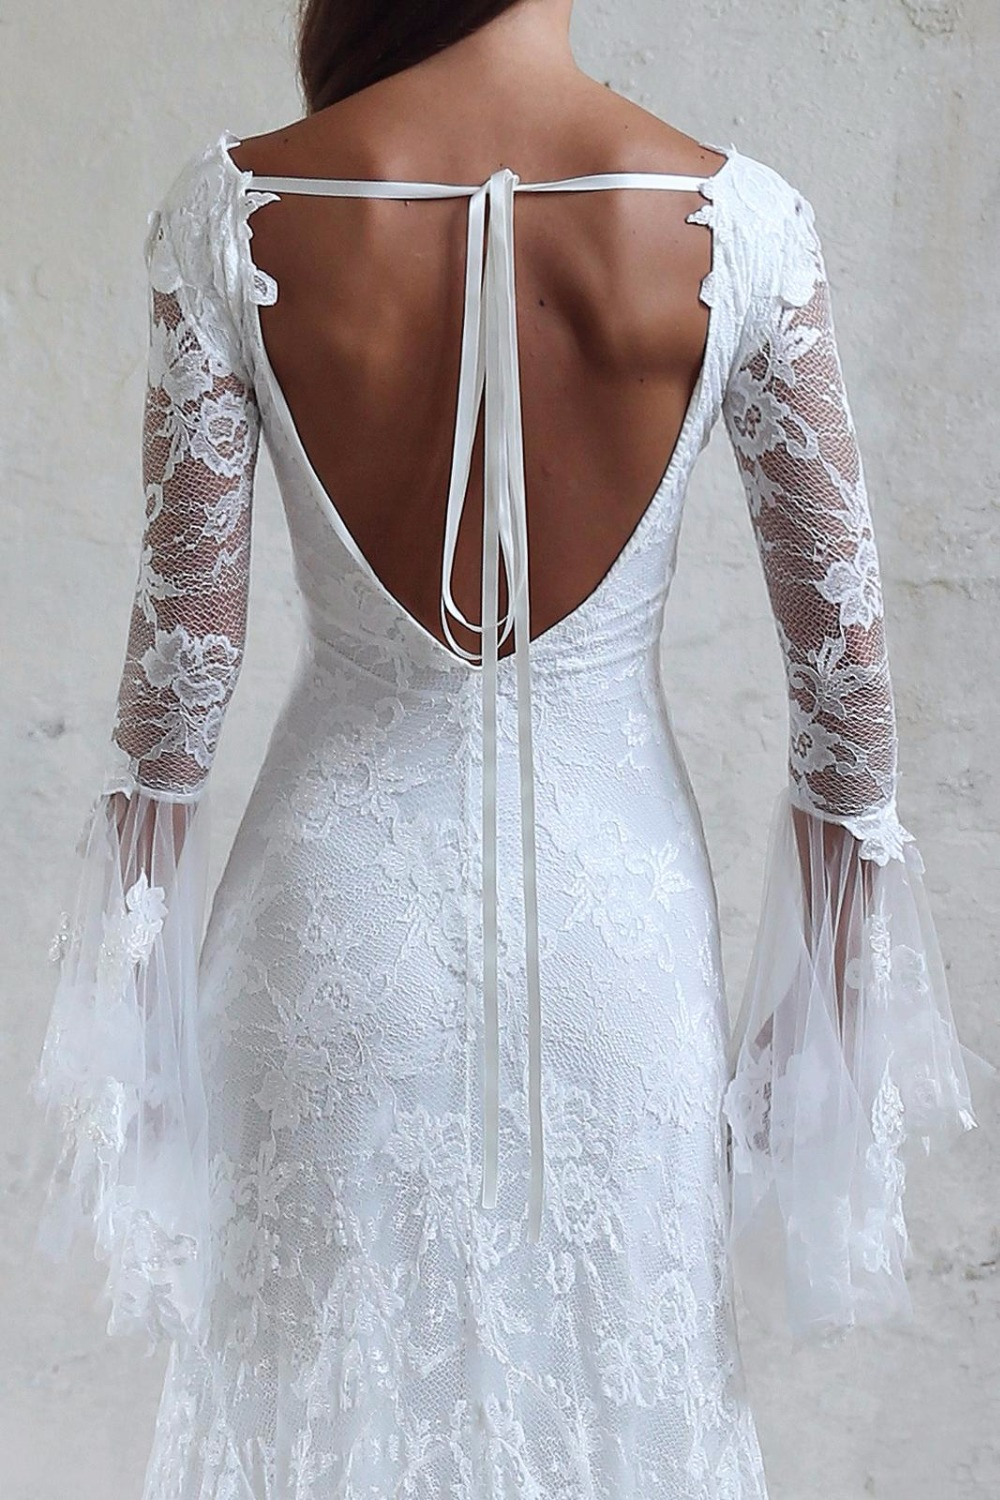 Wedding beach dresses pictures